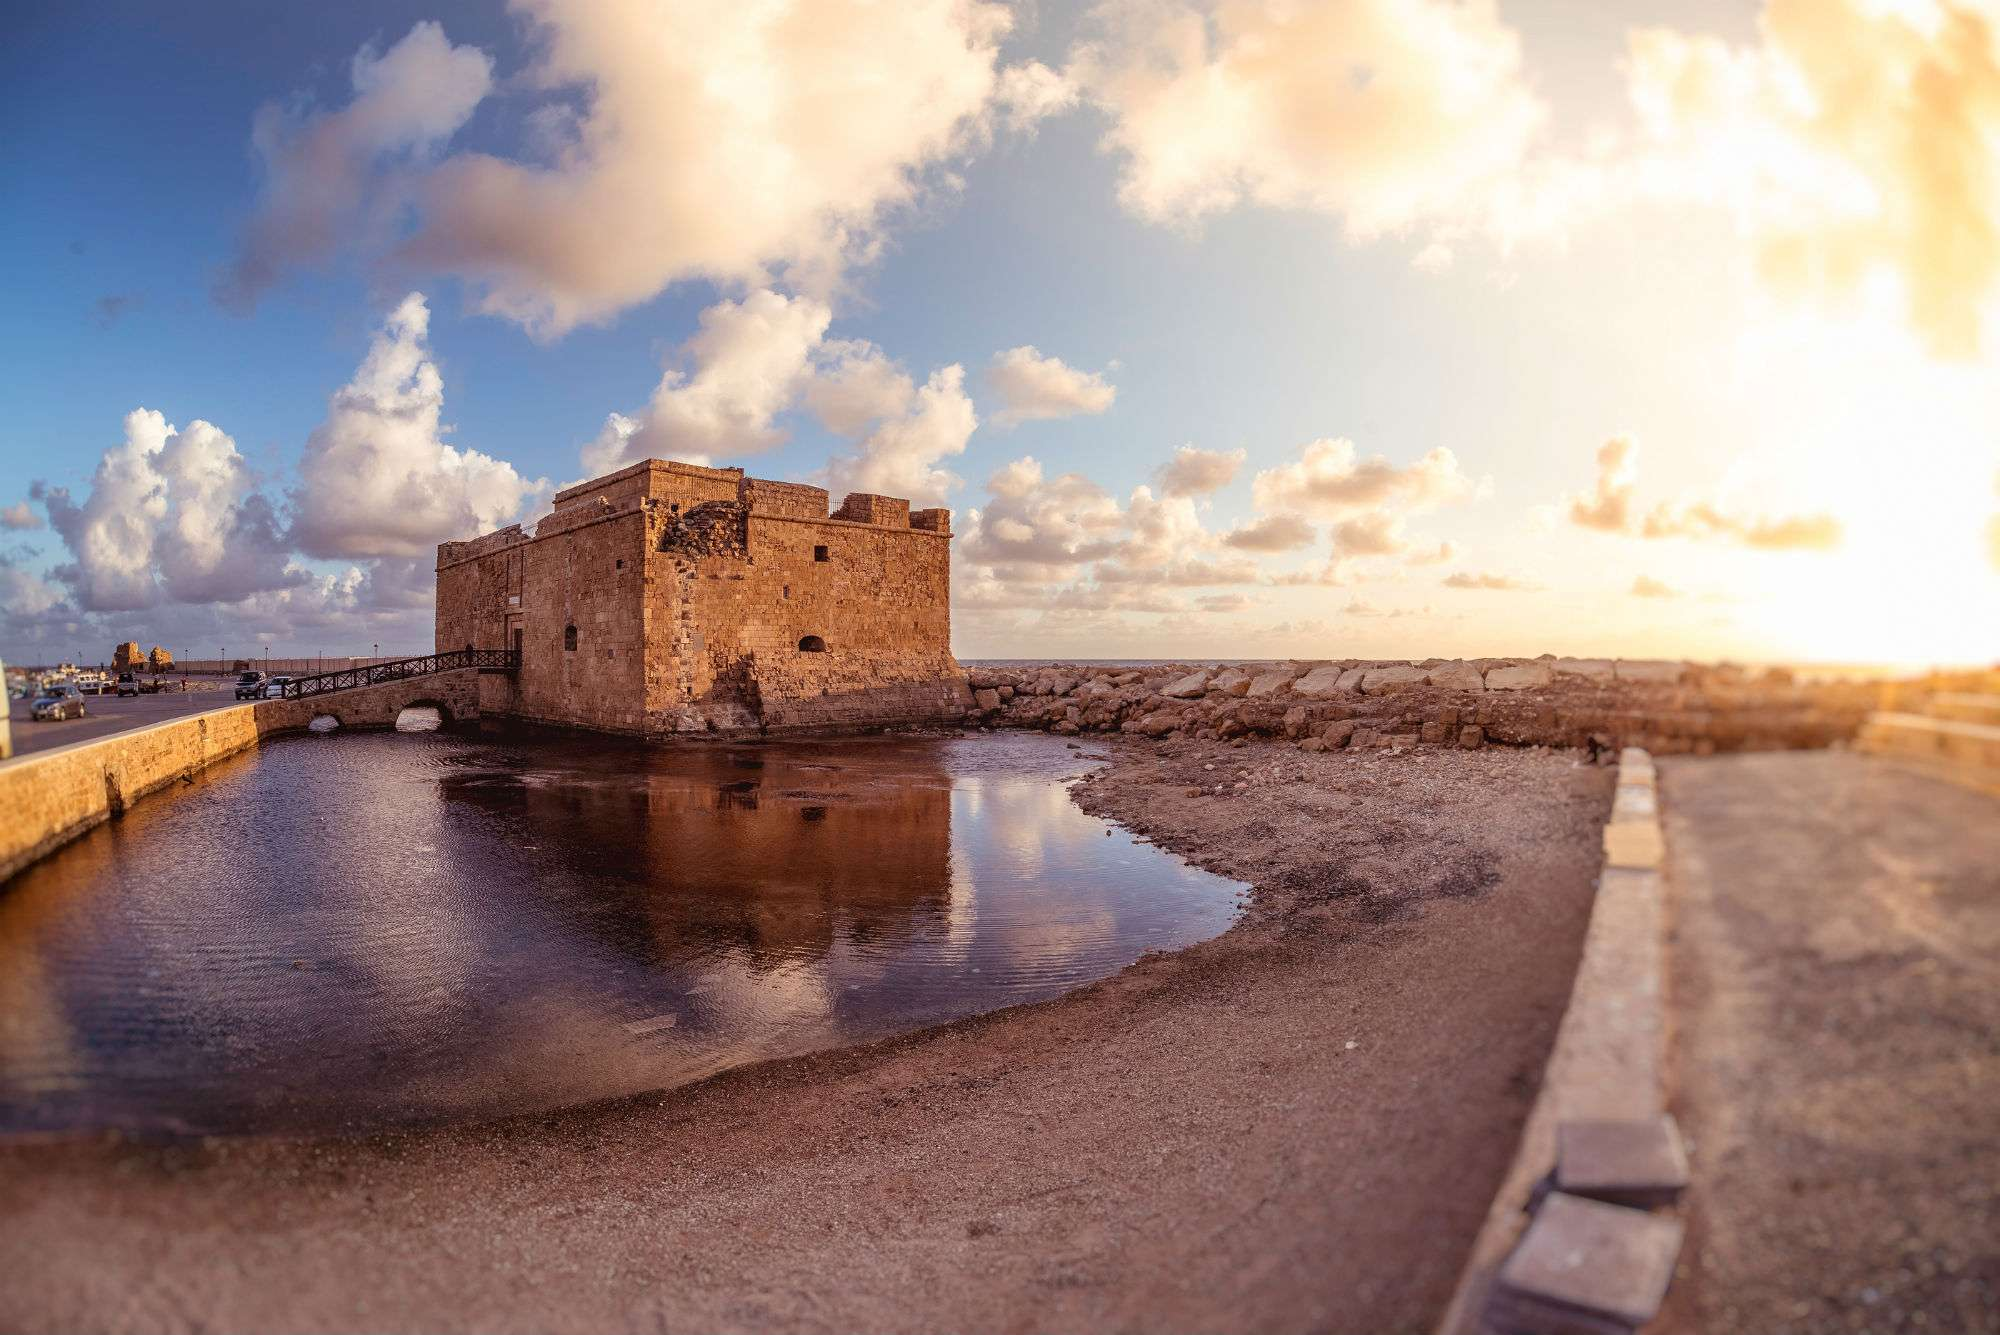 Medieval Fort - Castle Pafos (Paphos)